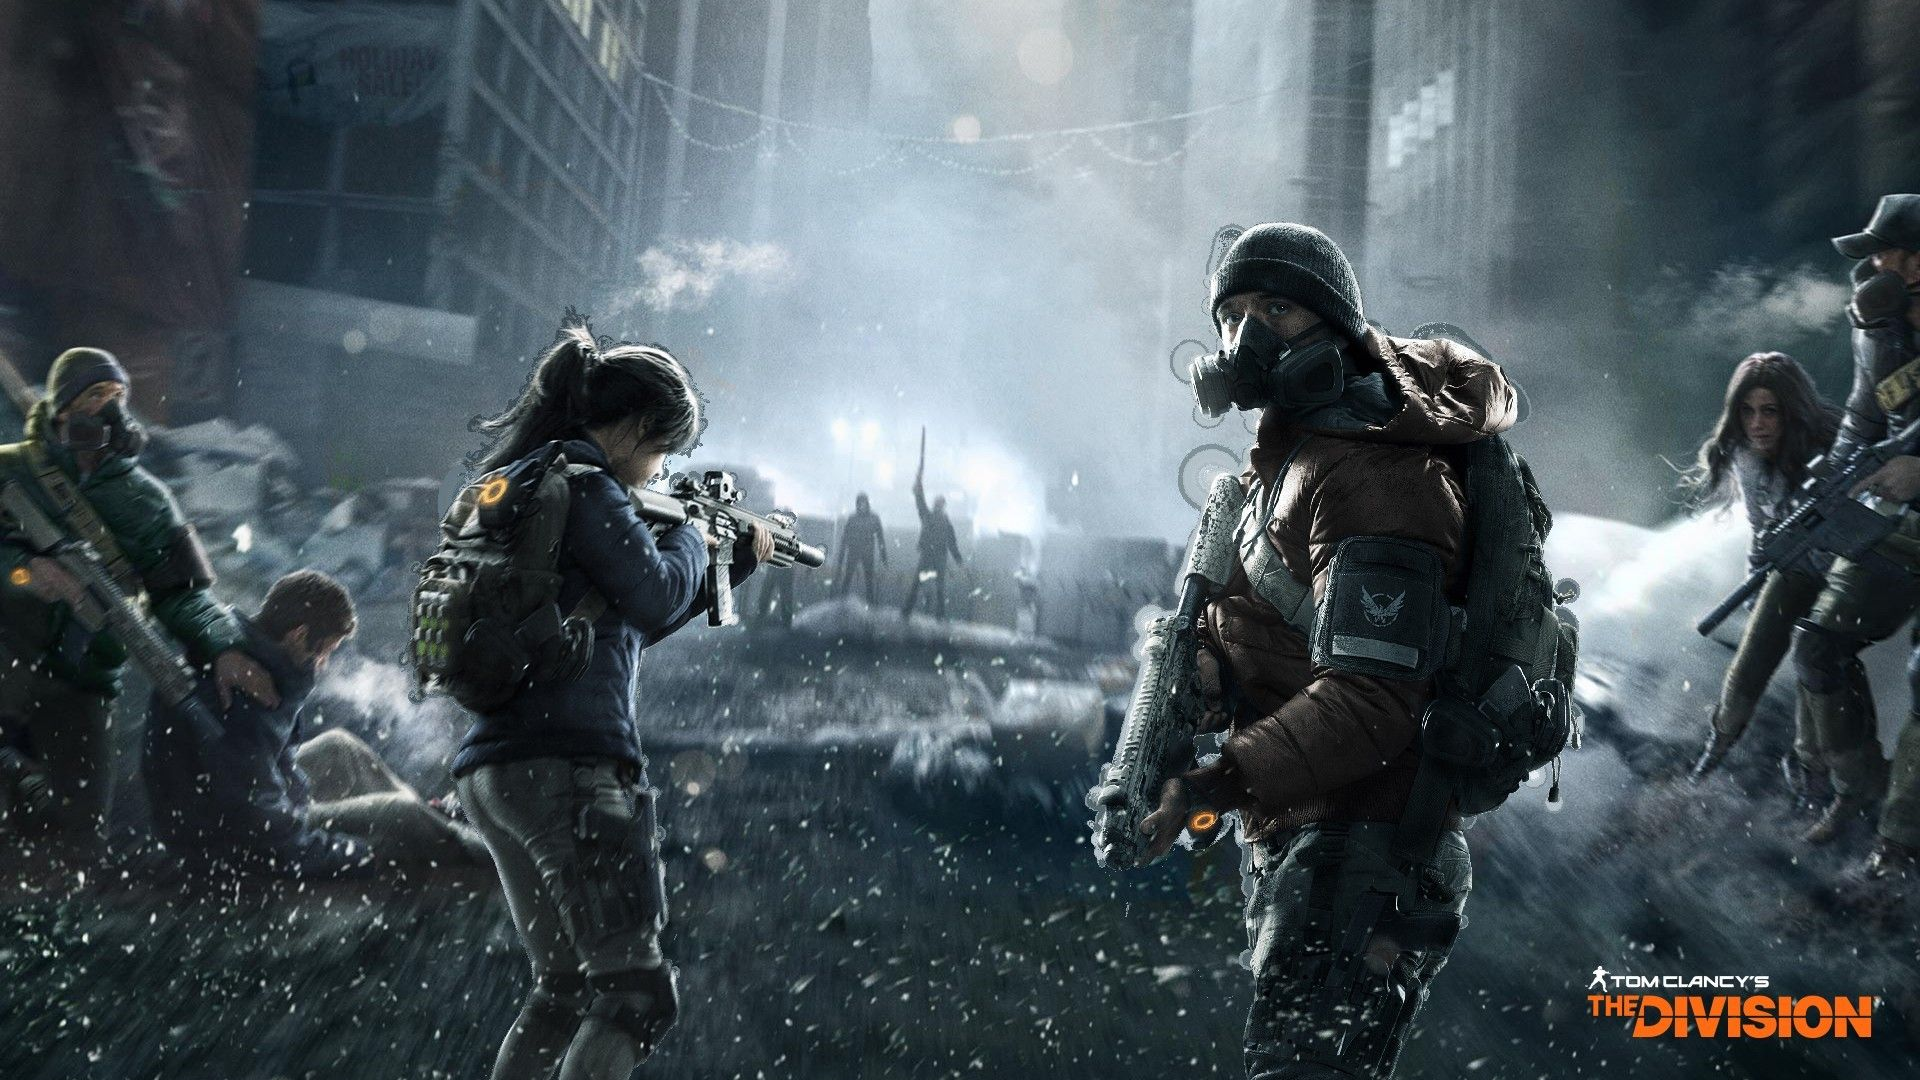 Free Download The Division Hd Wallpapers Tom Clancy The Division